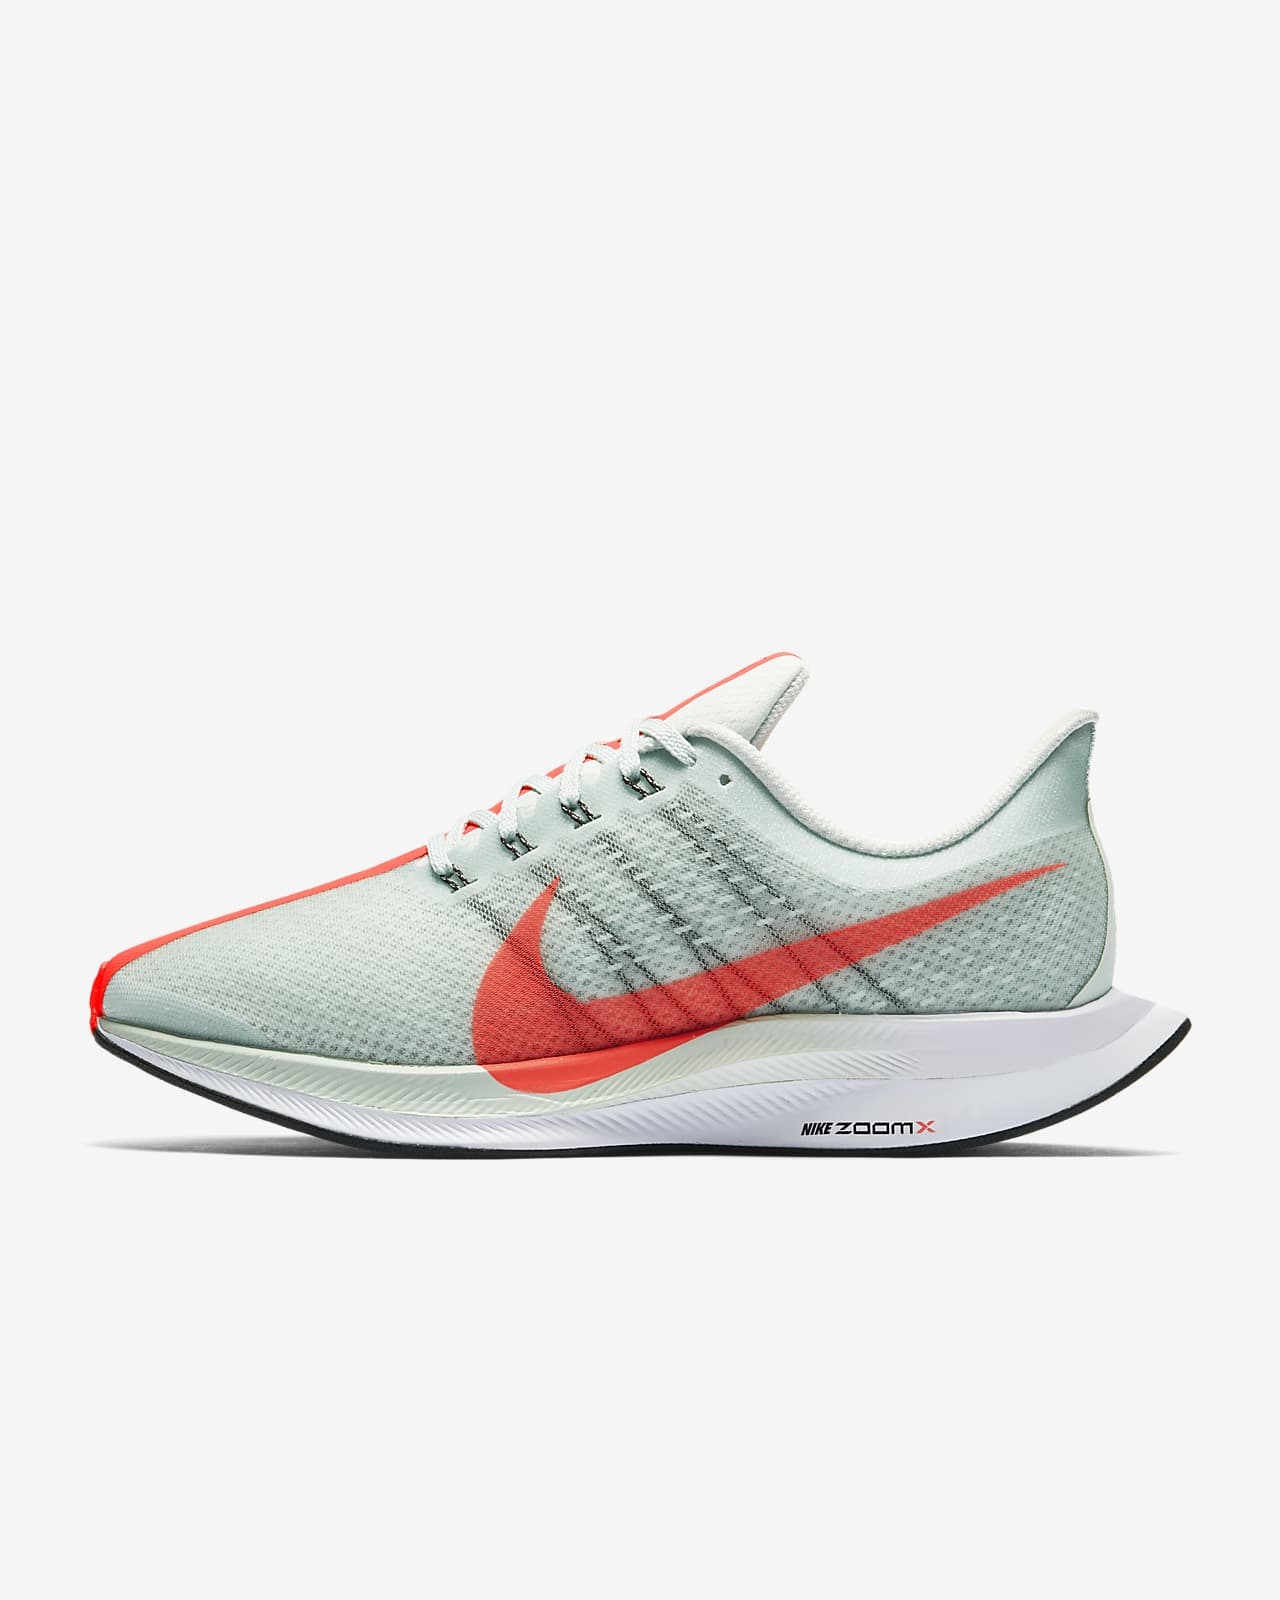 Nike Zoom Pegasus Turbo 女款跑鞋